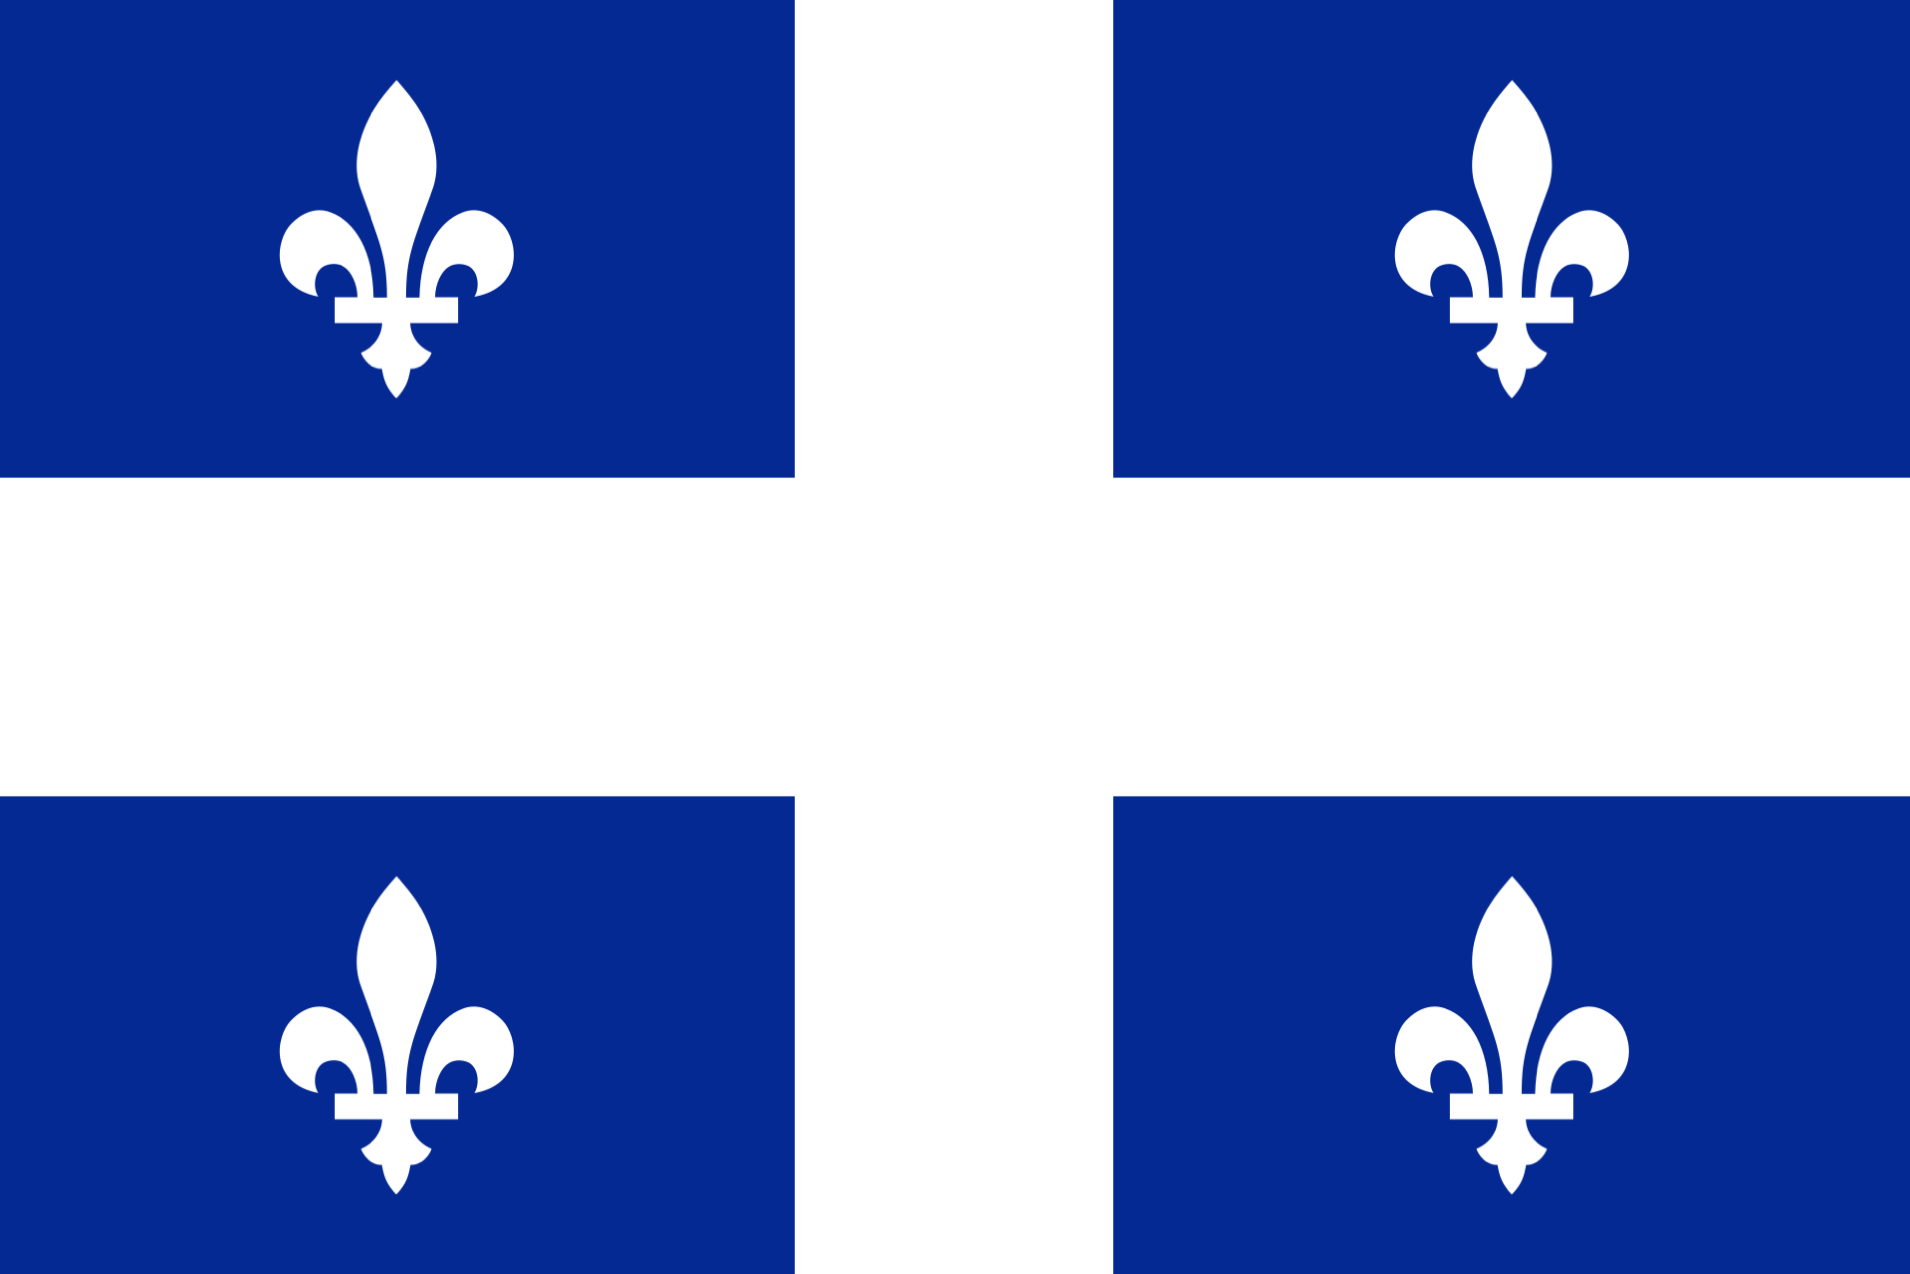 The flag of Quebec